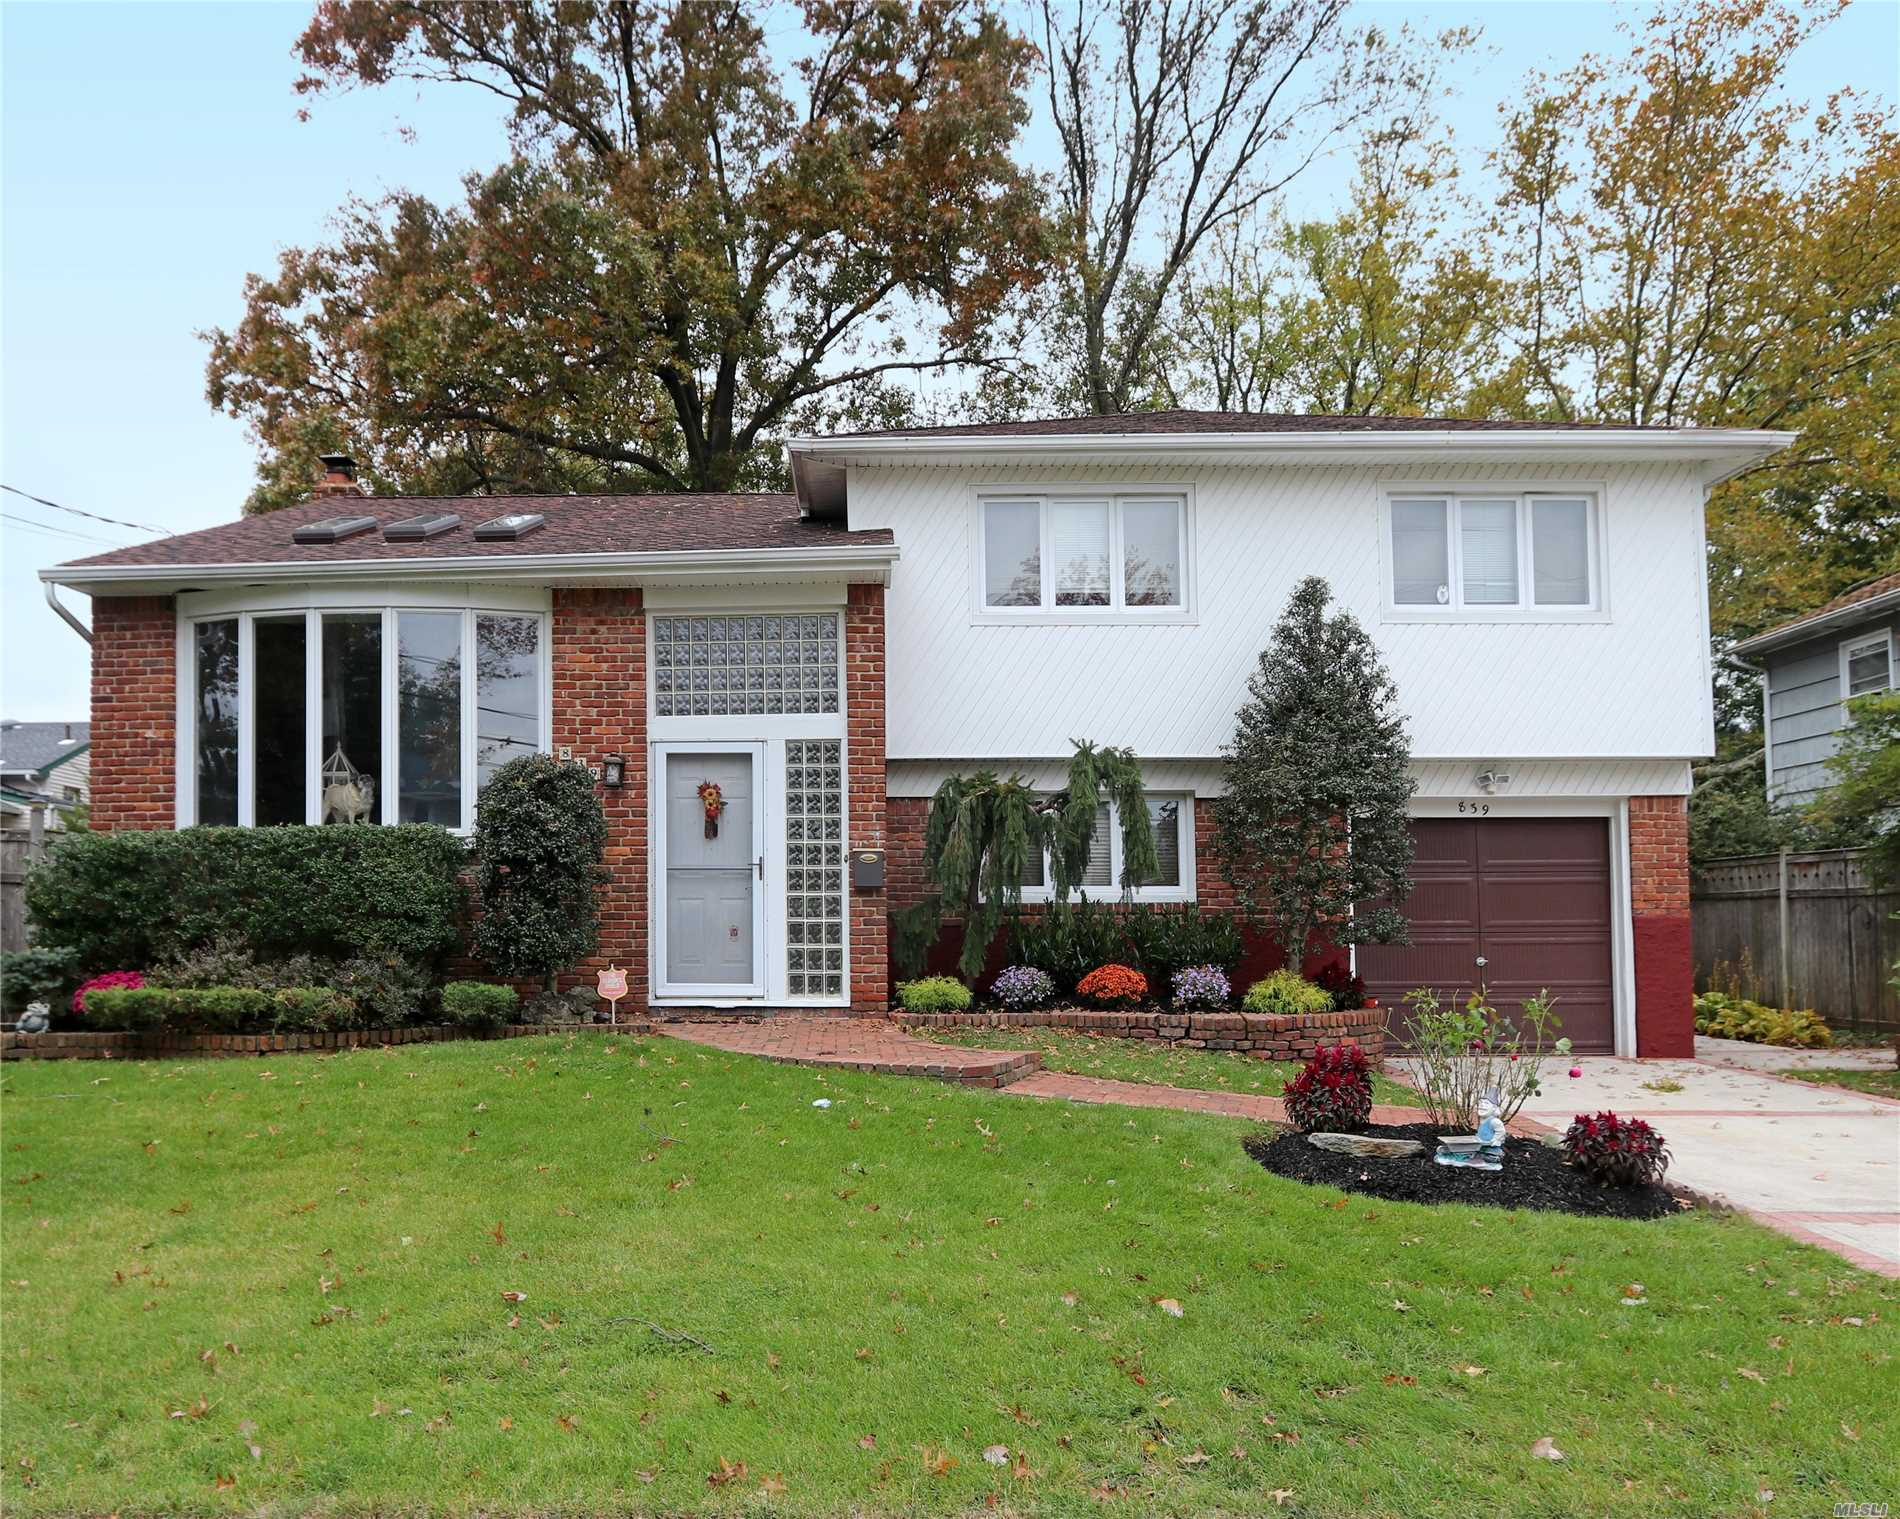 Welcome Home To This Well Maintained Split Located On A Dead End St In Baldwin Harbor! This Home Offers 3 Br's, 2.5 Baths, Flr W/Vaulted Ceilings, Fdr Plus An Eik. The Lower Level Boasts A Den, Office, 1/2 Bath, Access To The Yard & Entrance To The 1 Car Attached Garage. The Part Bsmt Includes A Separate Laundry Room, Utility Room And Add'l Storage. The O/S 133' Deep Property Is Fully Fenced & Accessible From The Eik. Don't Miss The Opportunity To Make This House Your New Home!